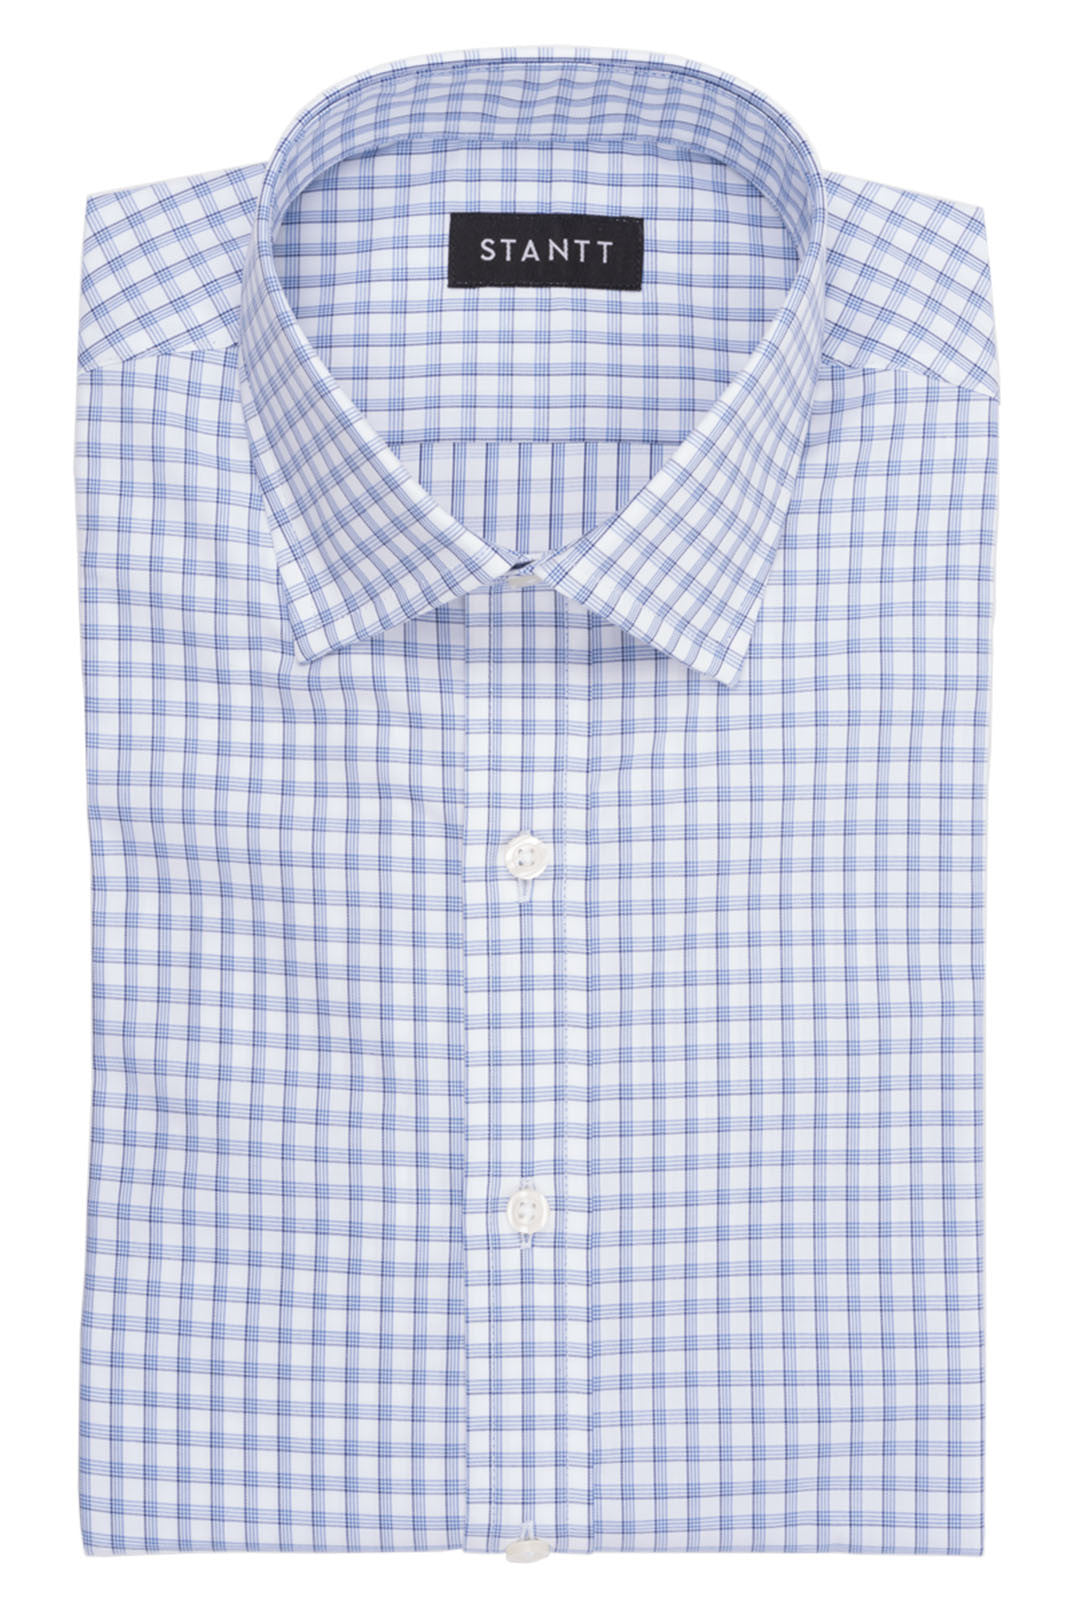 Wrinkle-Resistant Navy Accented Multi Grid Check: Semi-Spread Collar, French Cuff